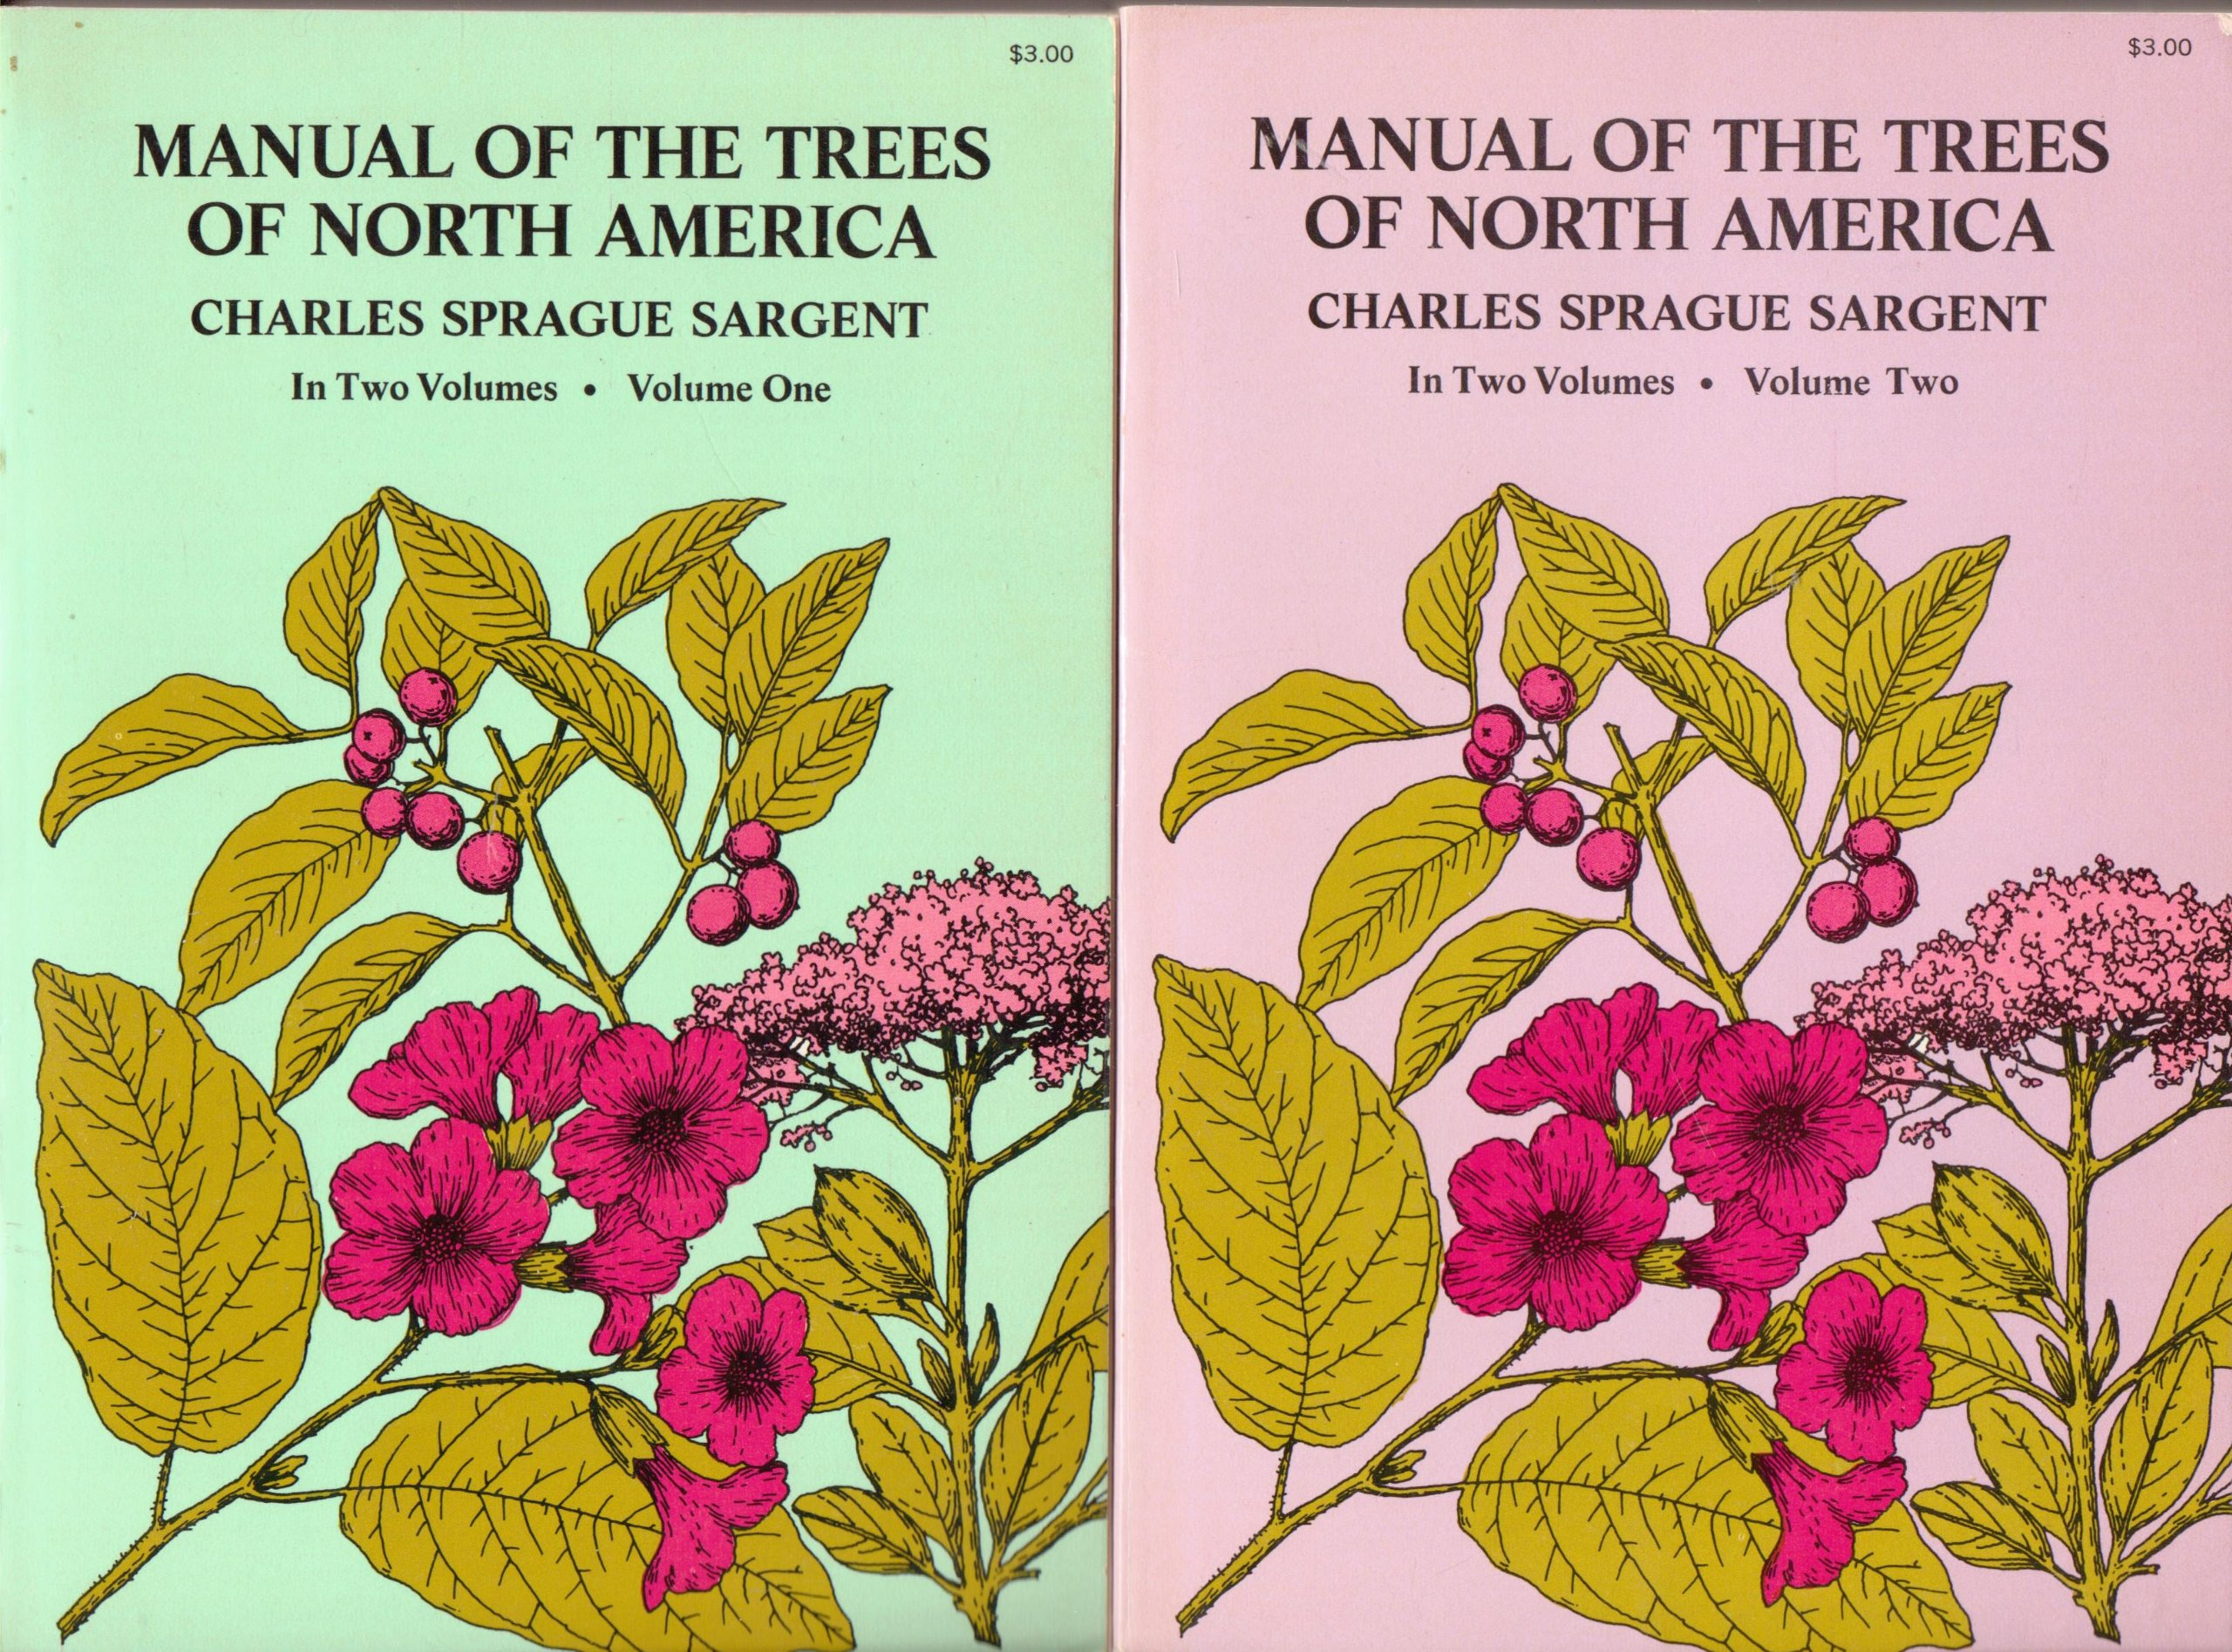 Manual of the Trees of North America., Charles Sprague Sargent